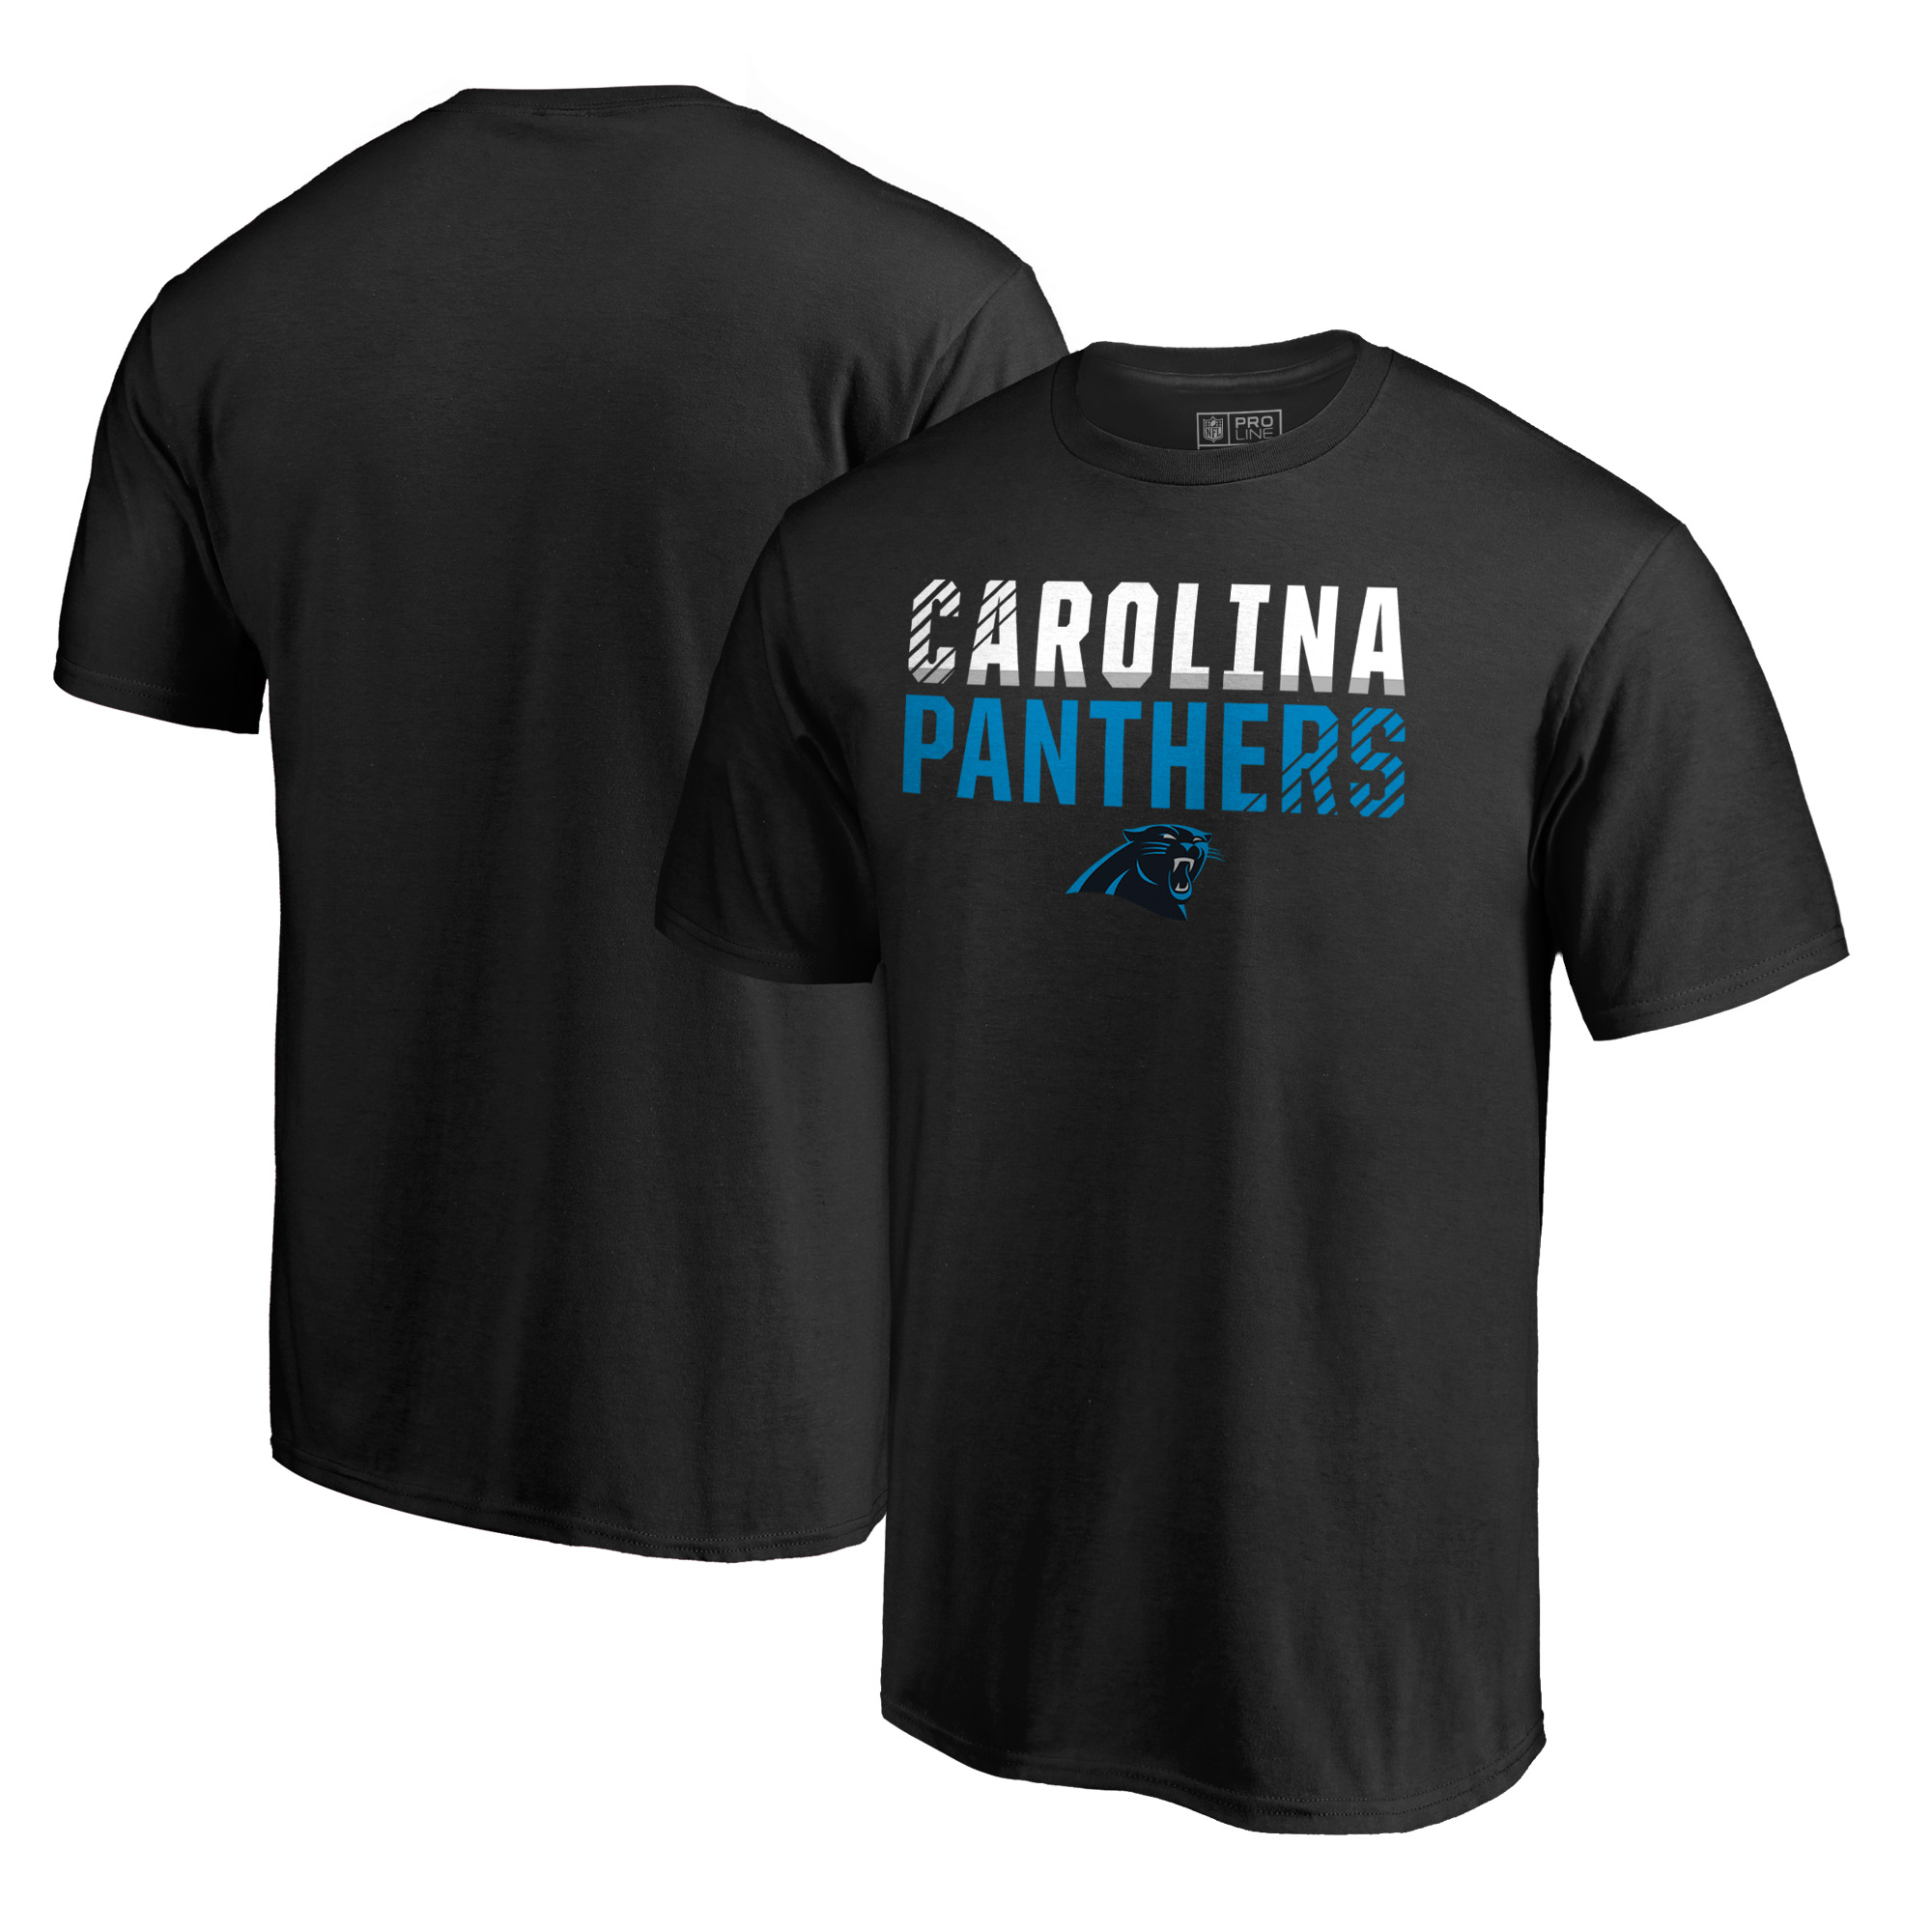 Carolina Panthers NFL Pro Line by Fanatics Branded Iconic Collection Fade Out T-Shirt - Black